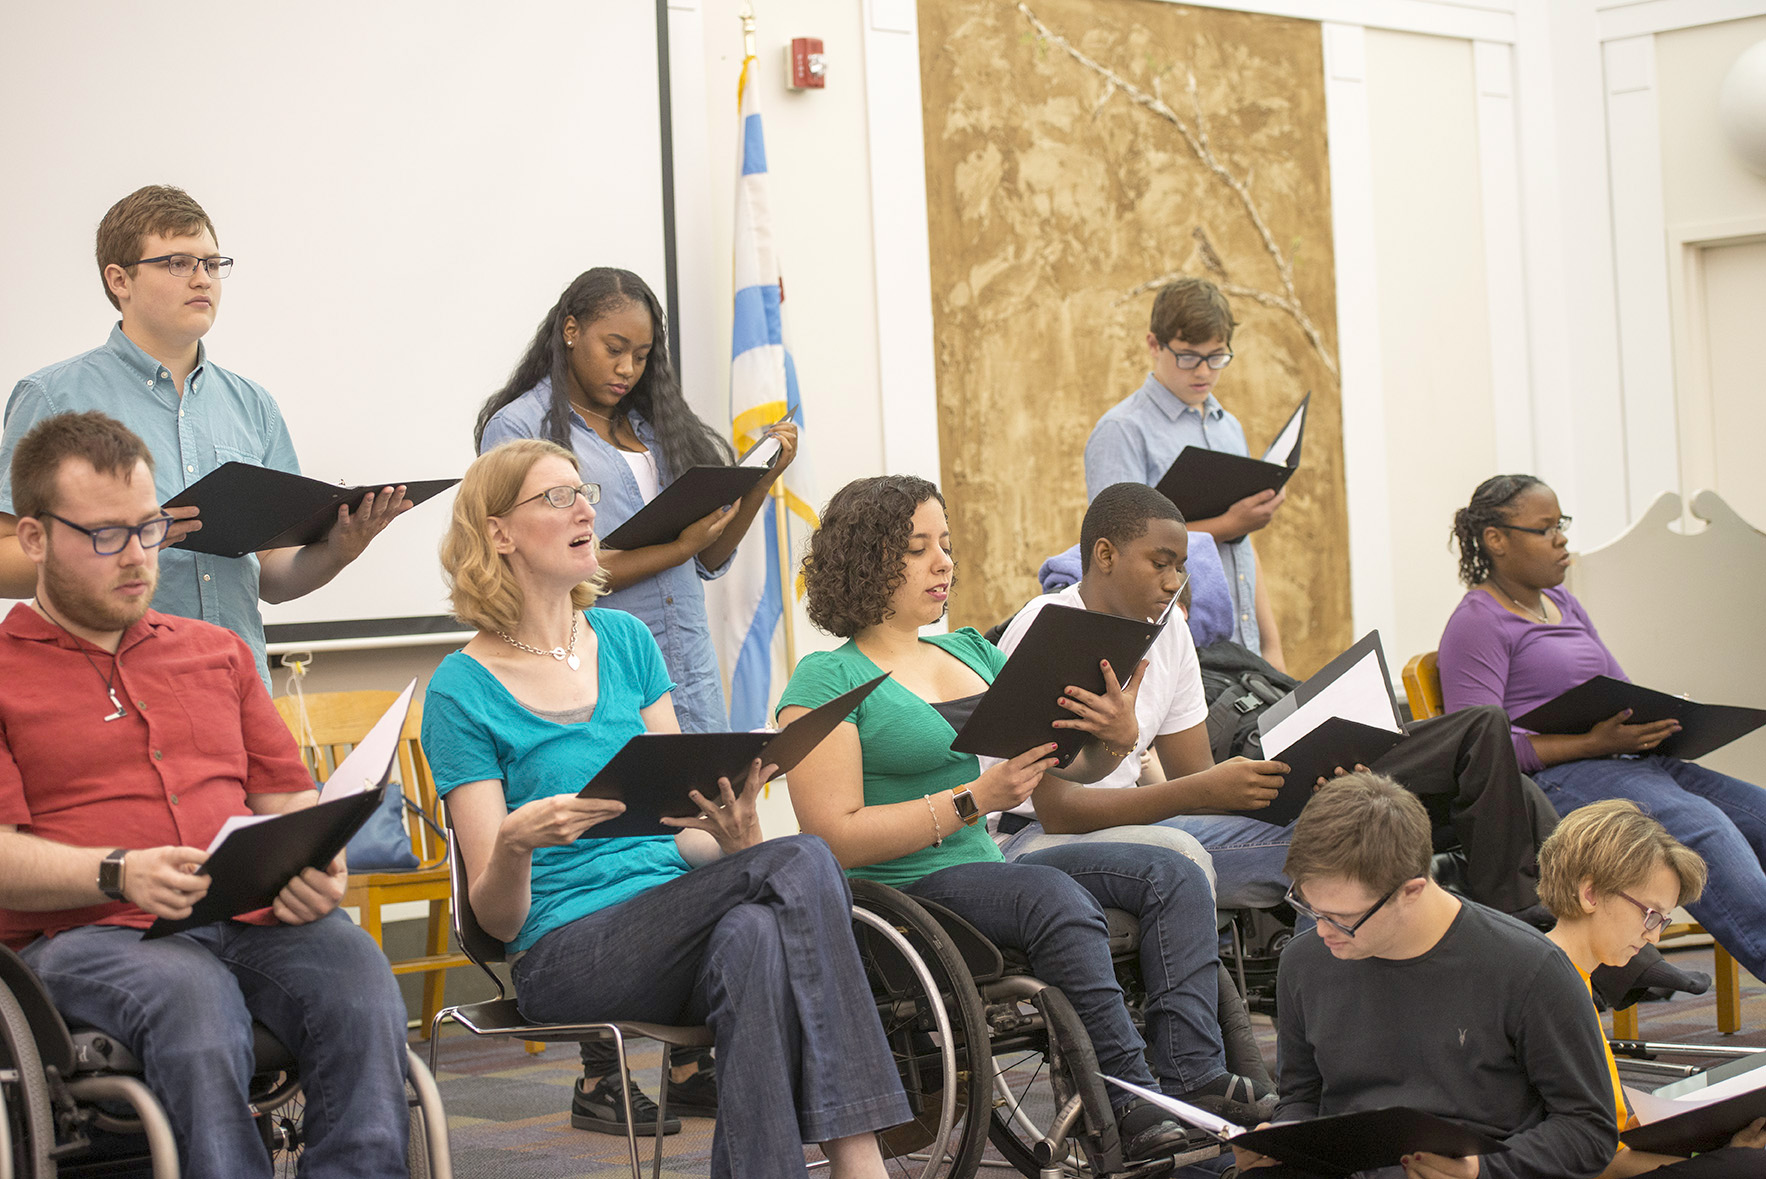 Tellin' Tales Theatre's Young Adult Writers program 2017, courtesy of Chicago Public Library. Image description: eleven people reading from black folders. Three people stand at the back while the rest are seated. Several of the participants are using wheelchairs.